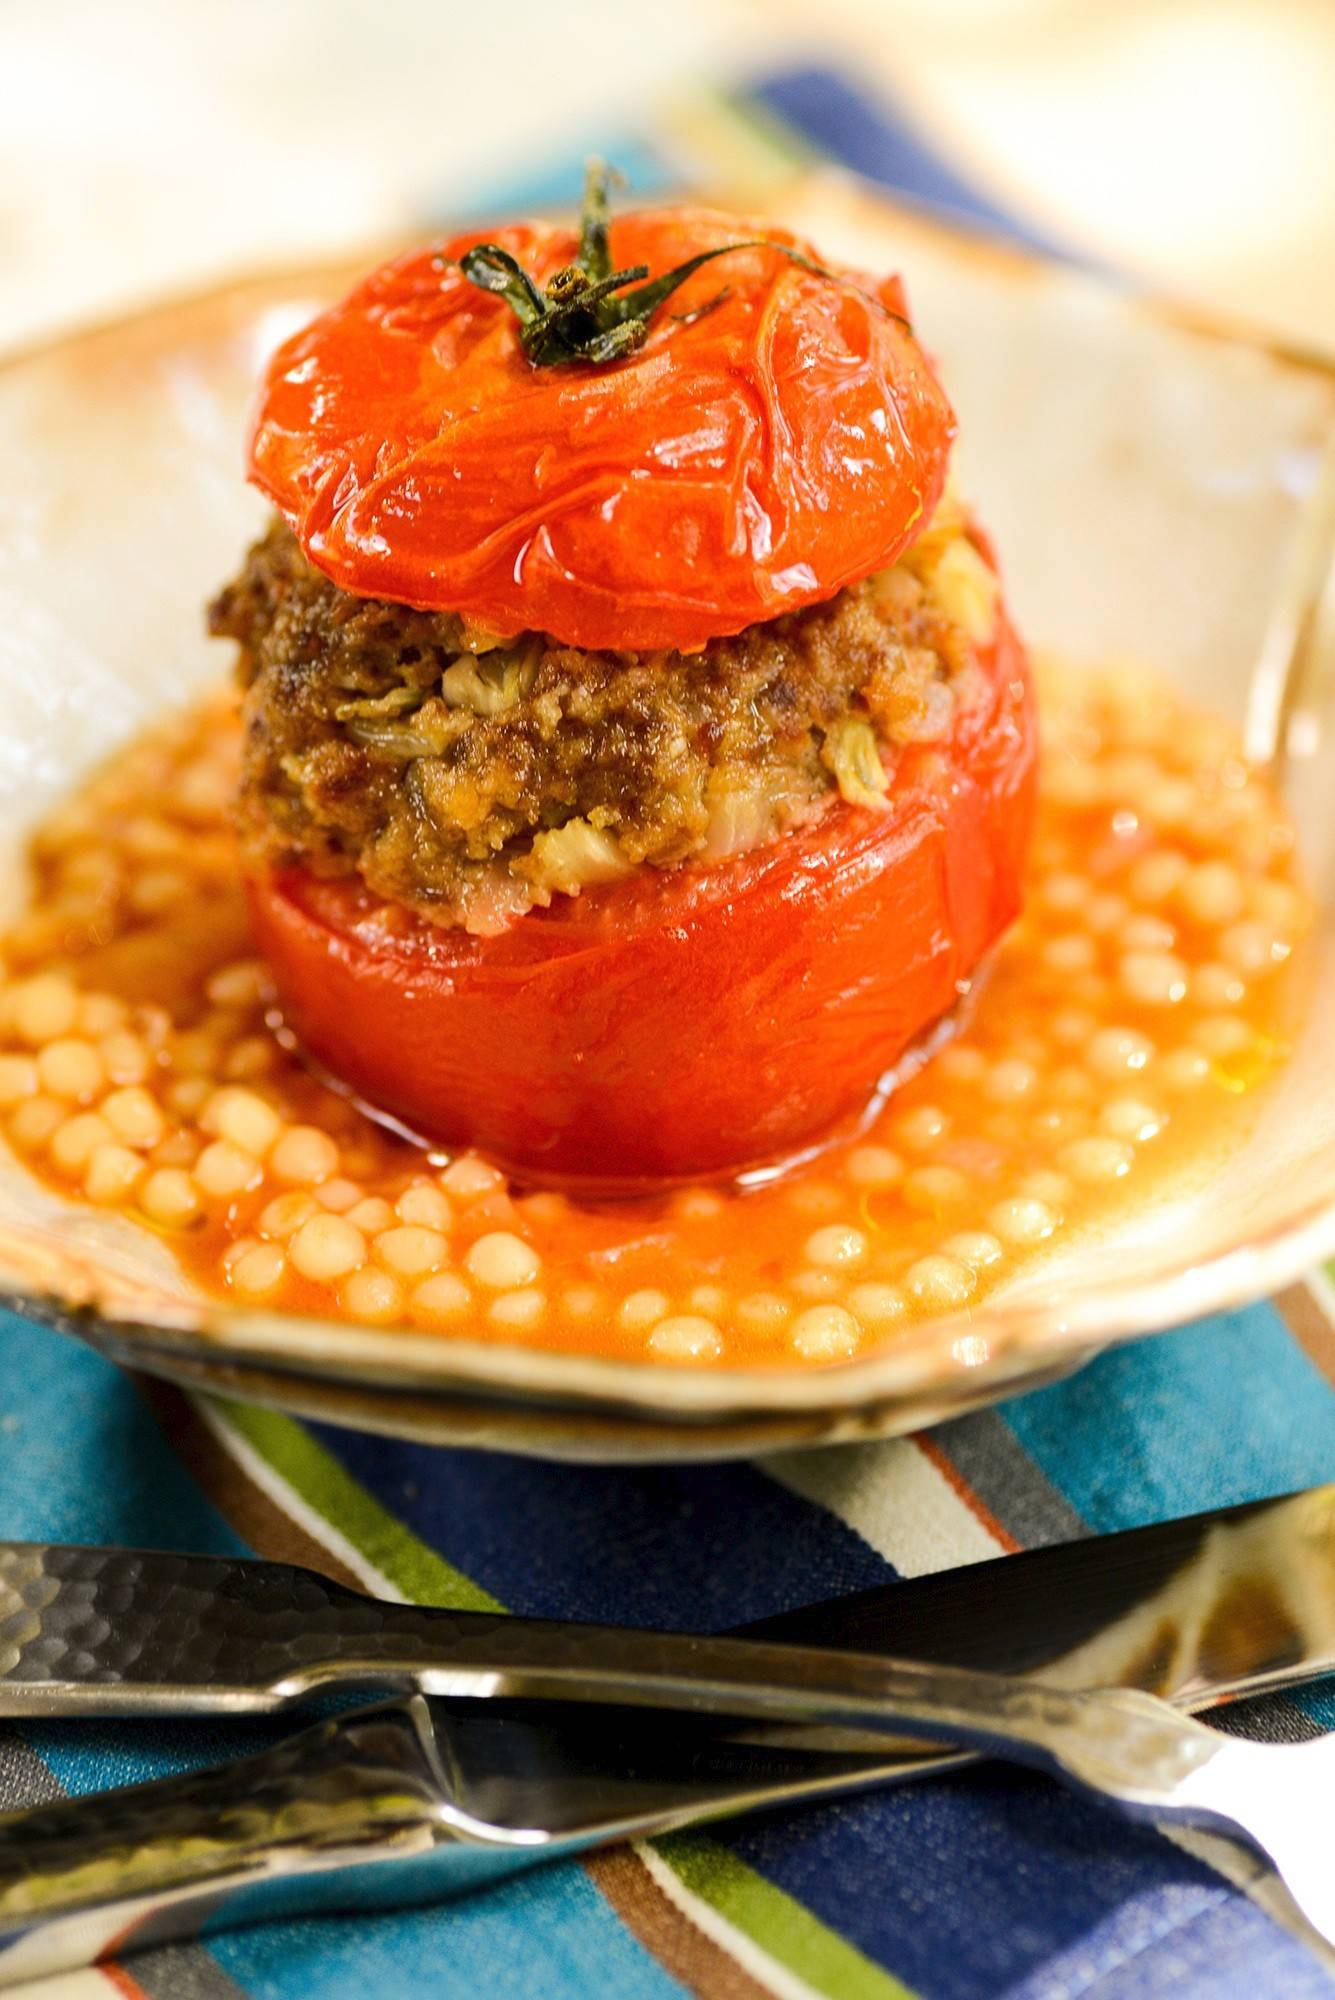 This stuffed tomato recipe uses a middling-quality tomato as a vessel for baking savory little meatloaves.